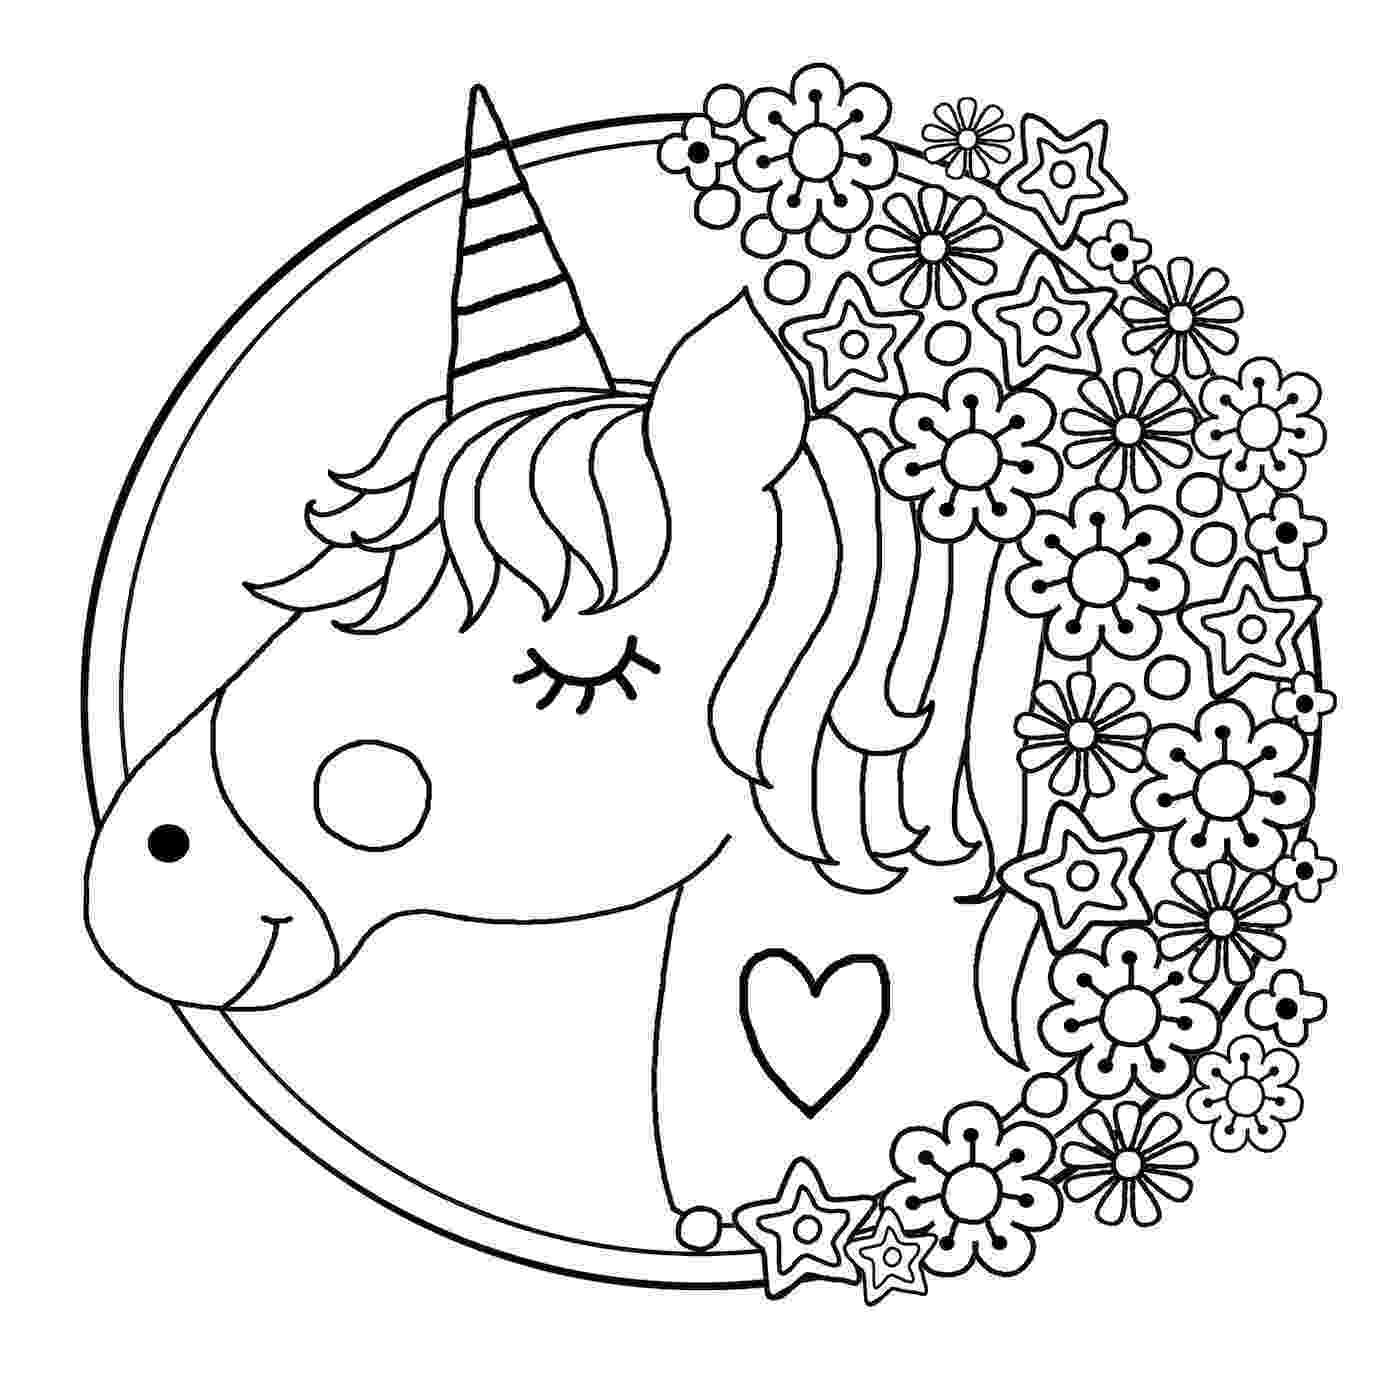 coloring pages for unicorns unicorn coloring page for kids stock illustration coloring pages for unicorns